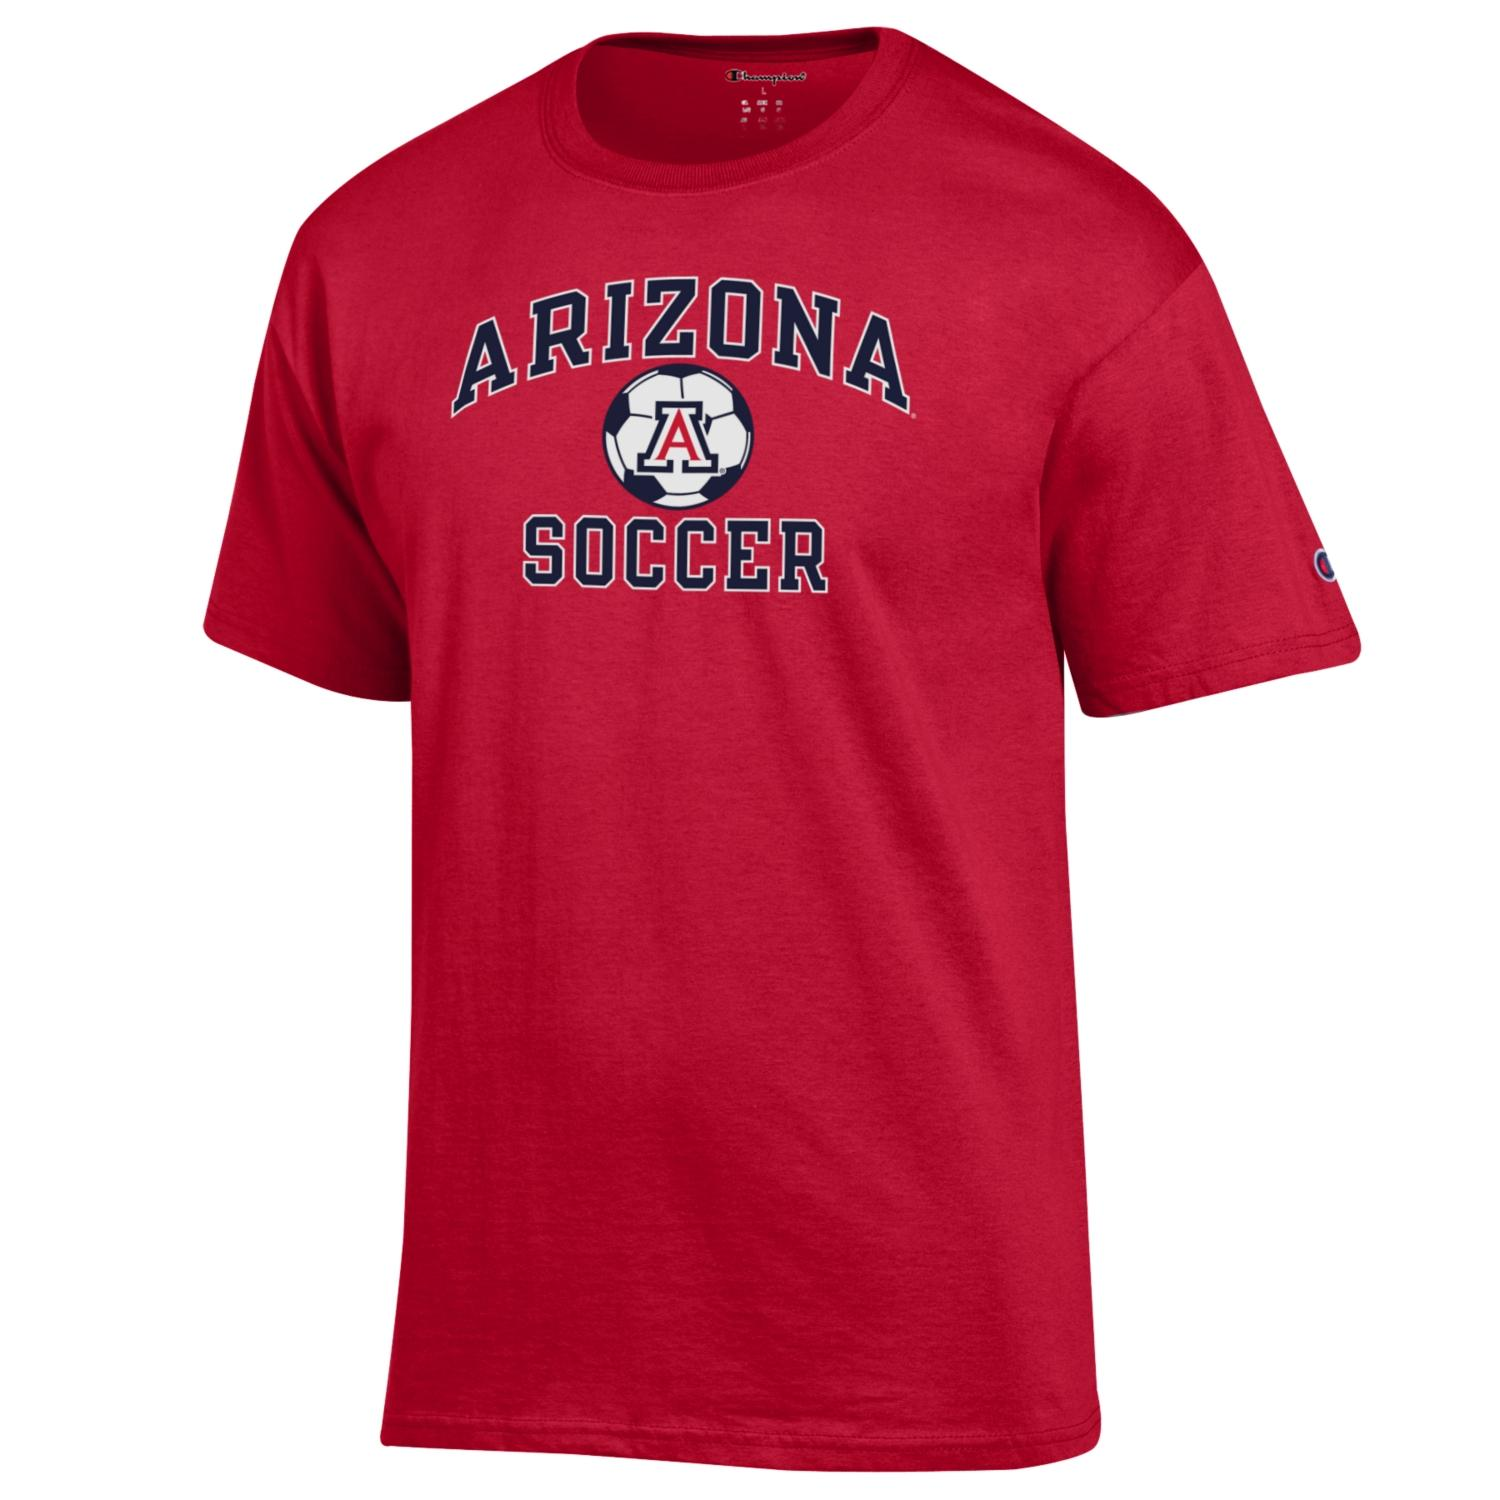 Image For Champion: Arizona Sport Soccer Tee - Red